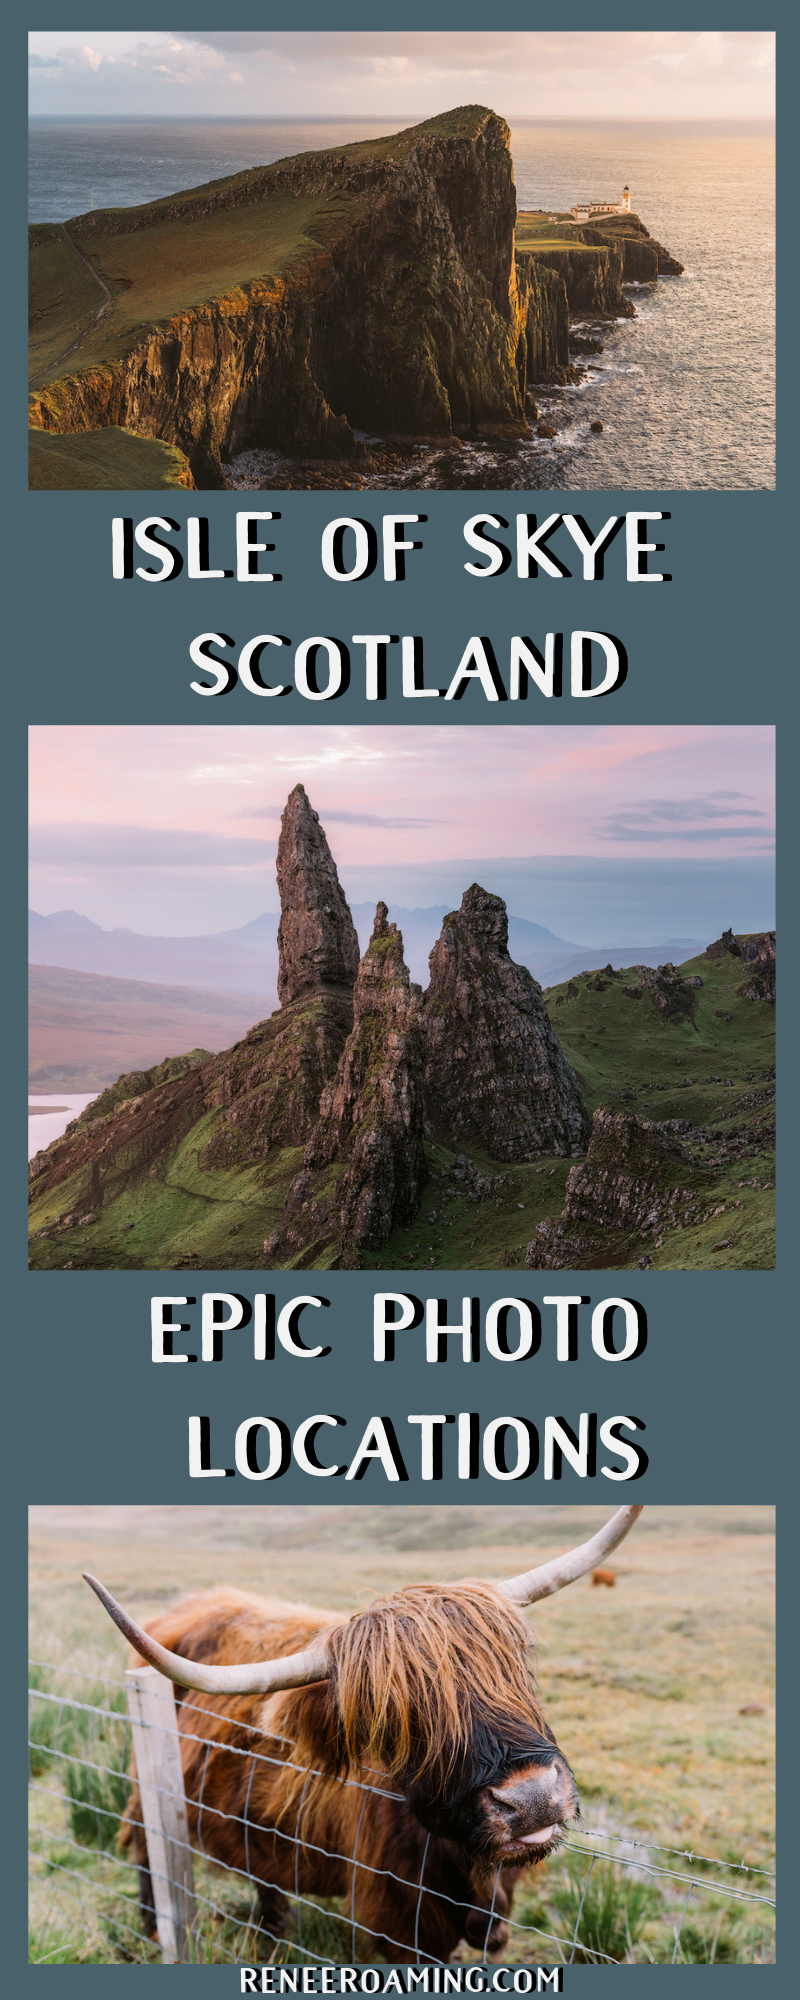 Isle of Skye Photography Locations You Won't Want To Miss - Renee Roaming - The Quiraing, Old Man of Storr, Portree, Highland Cows, Neist Point, Fairy Pools